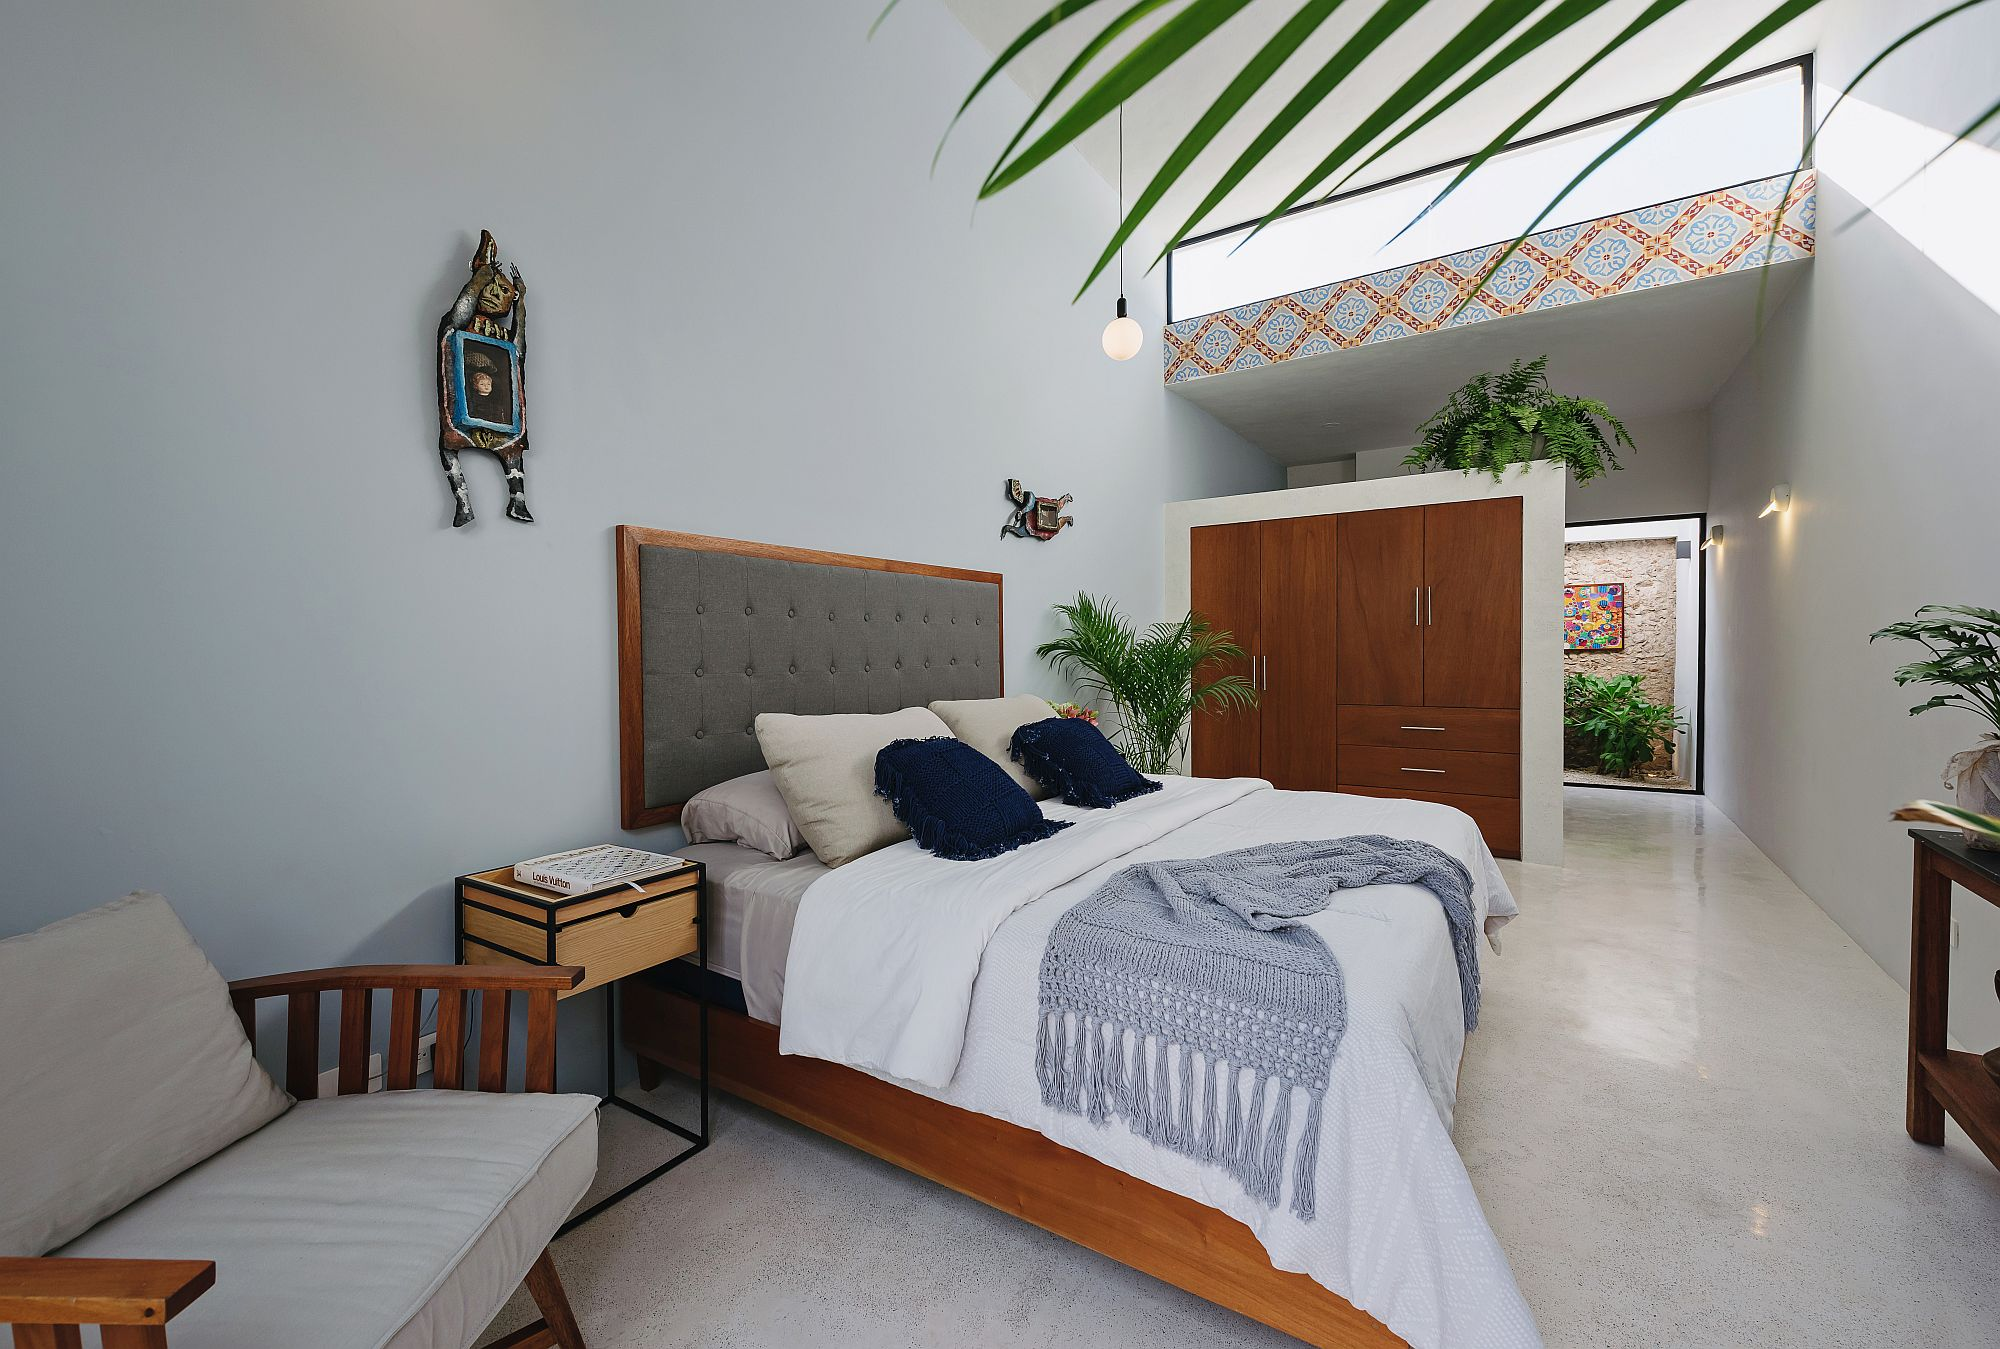 Modern-relaxing-bedroom-in-white-with-warm-wooden-elements-and-a-dash-of-color